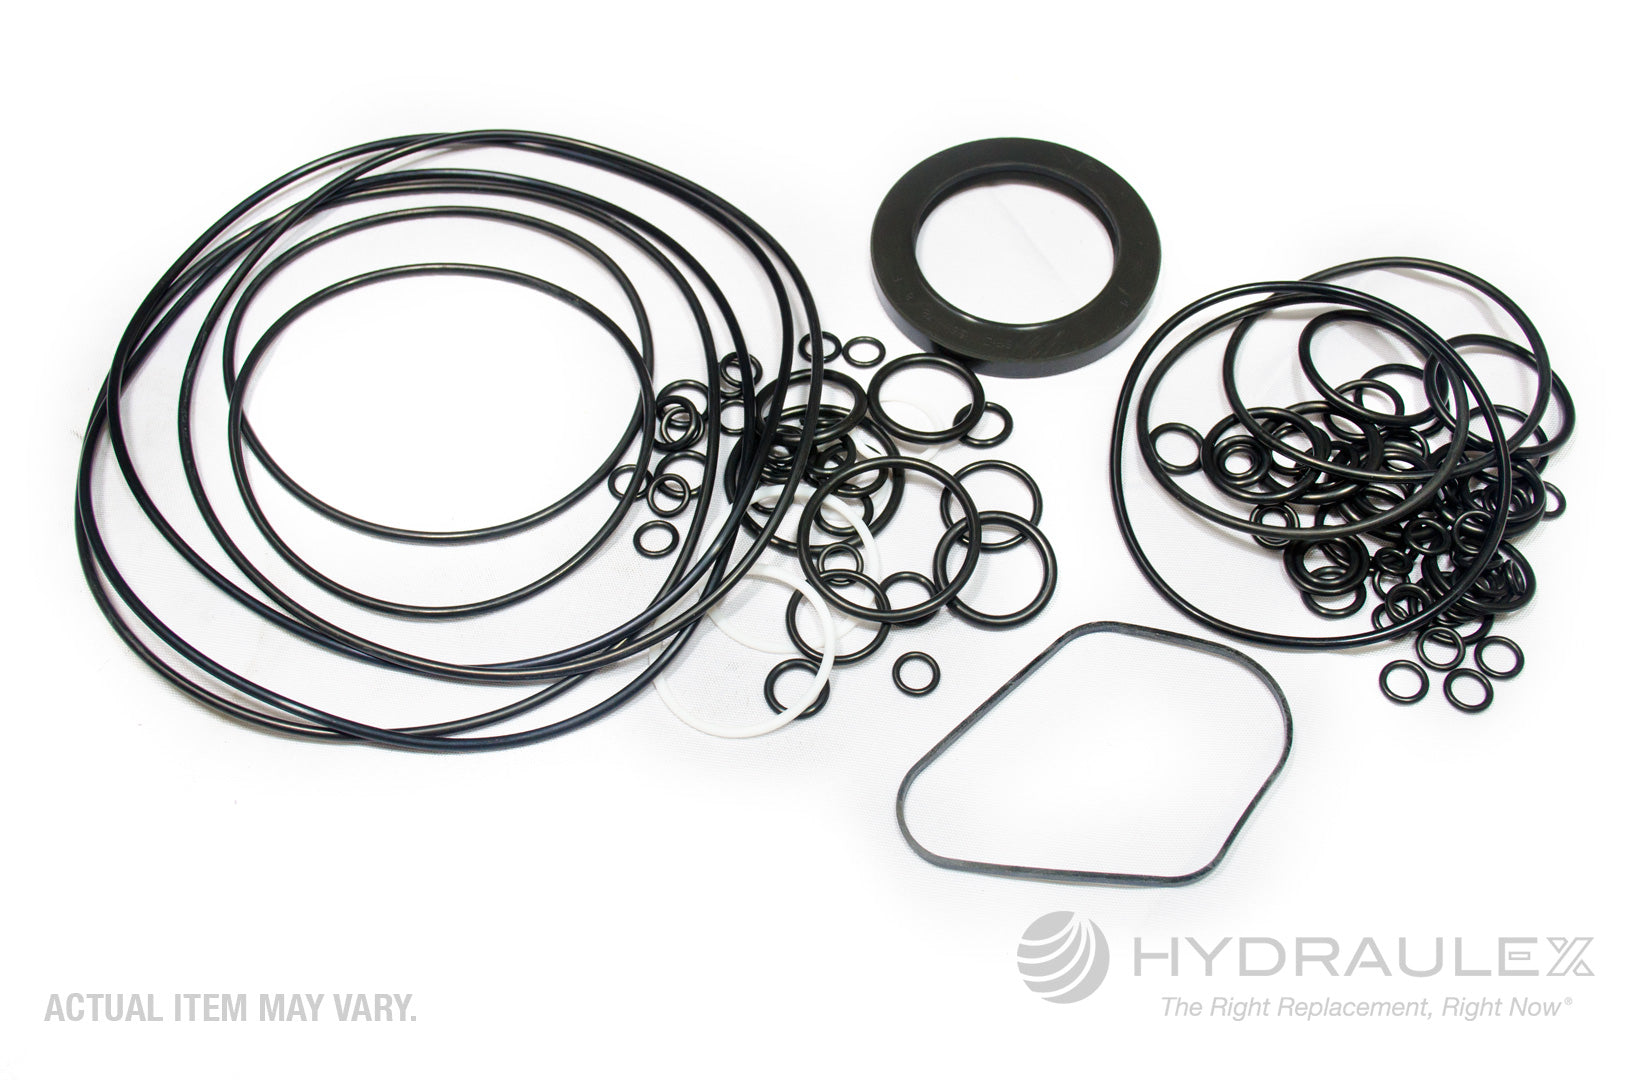 New Aftermarket Kawasaki K3V140DT Seal Kit